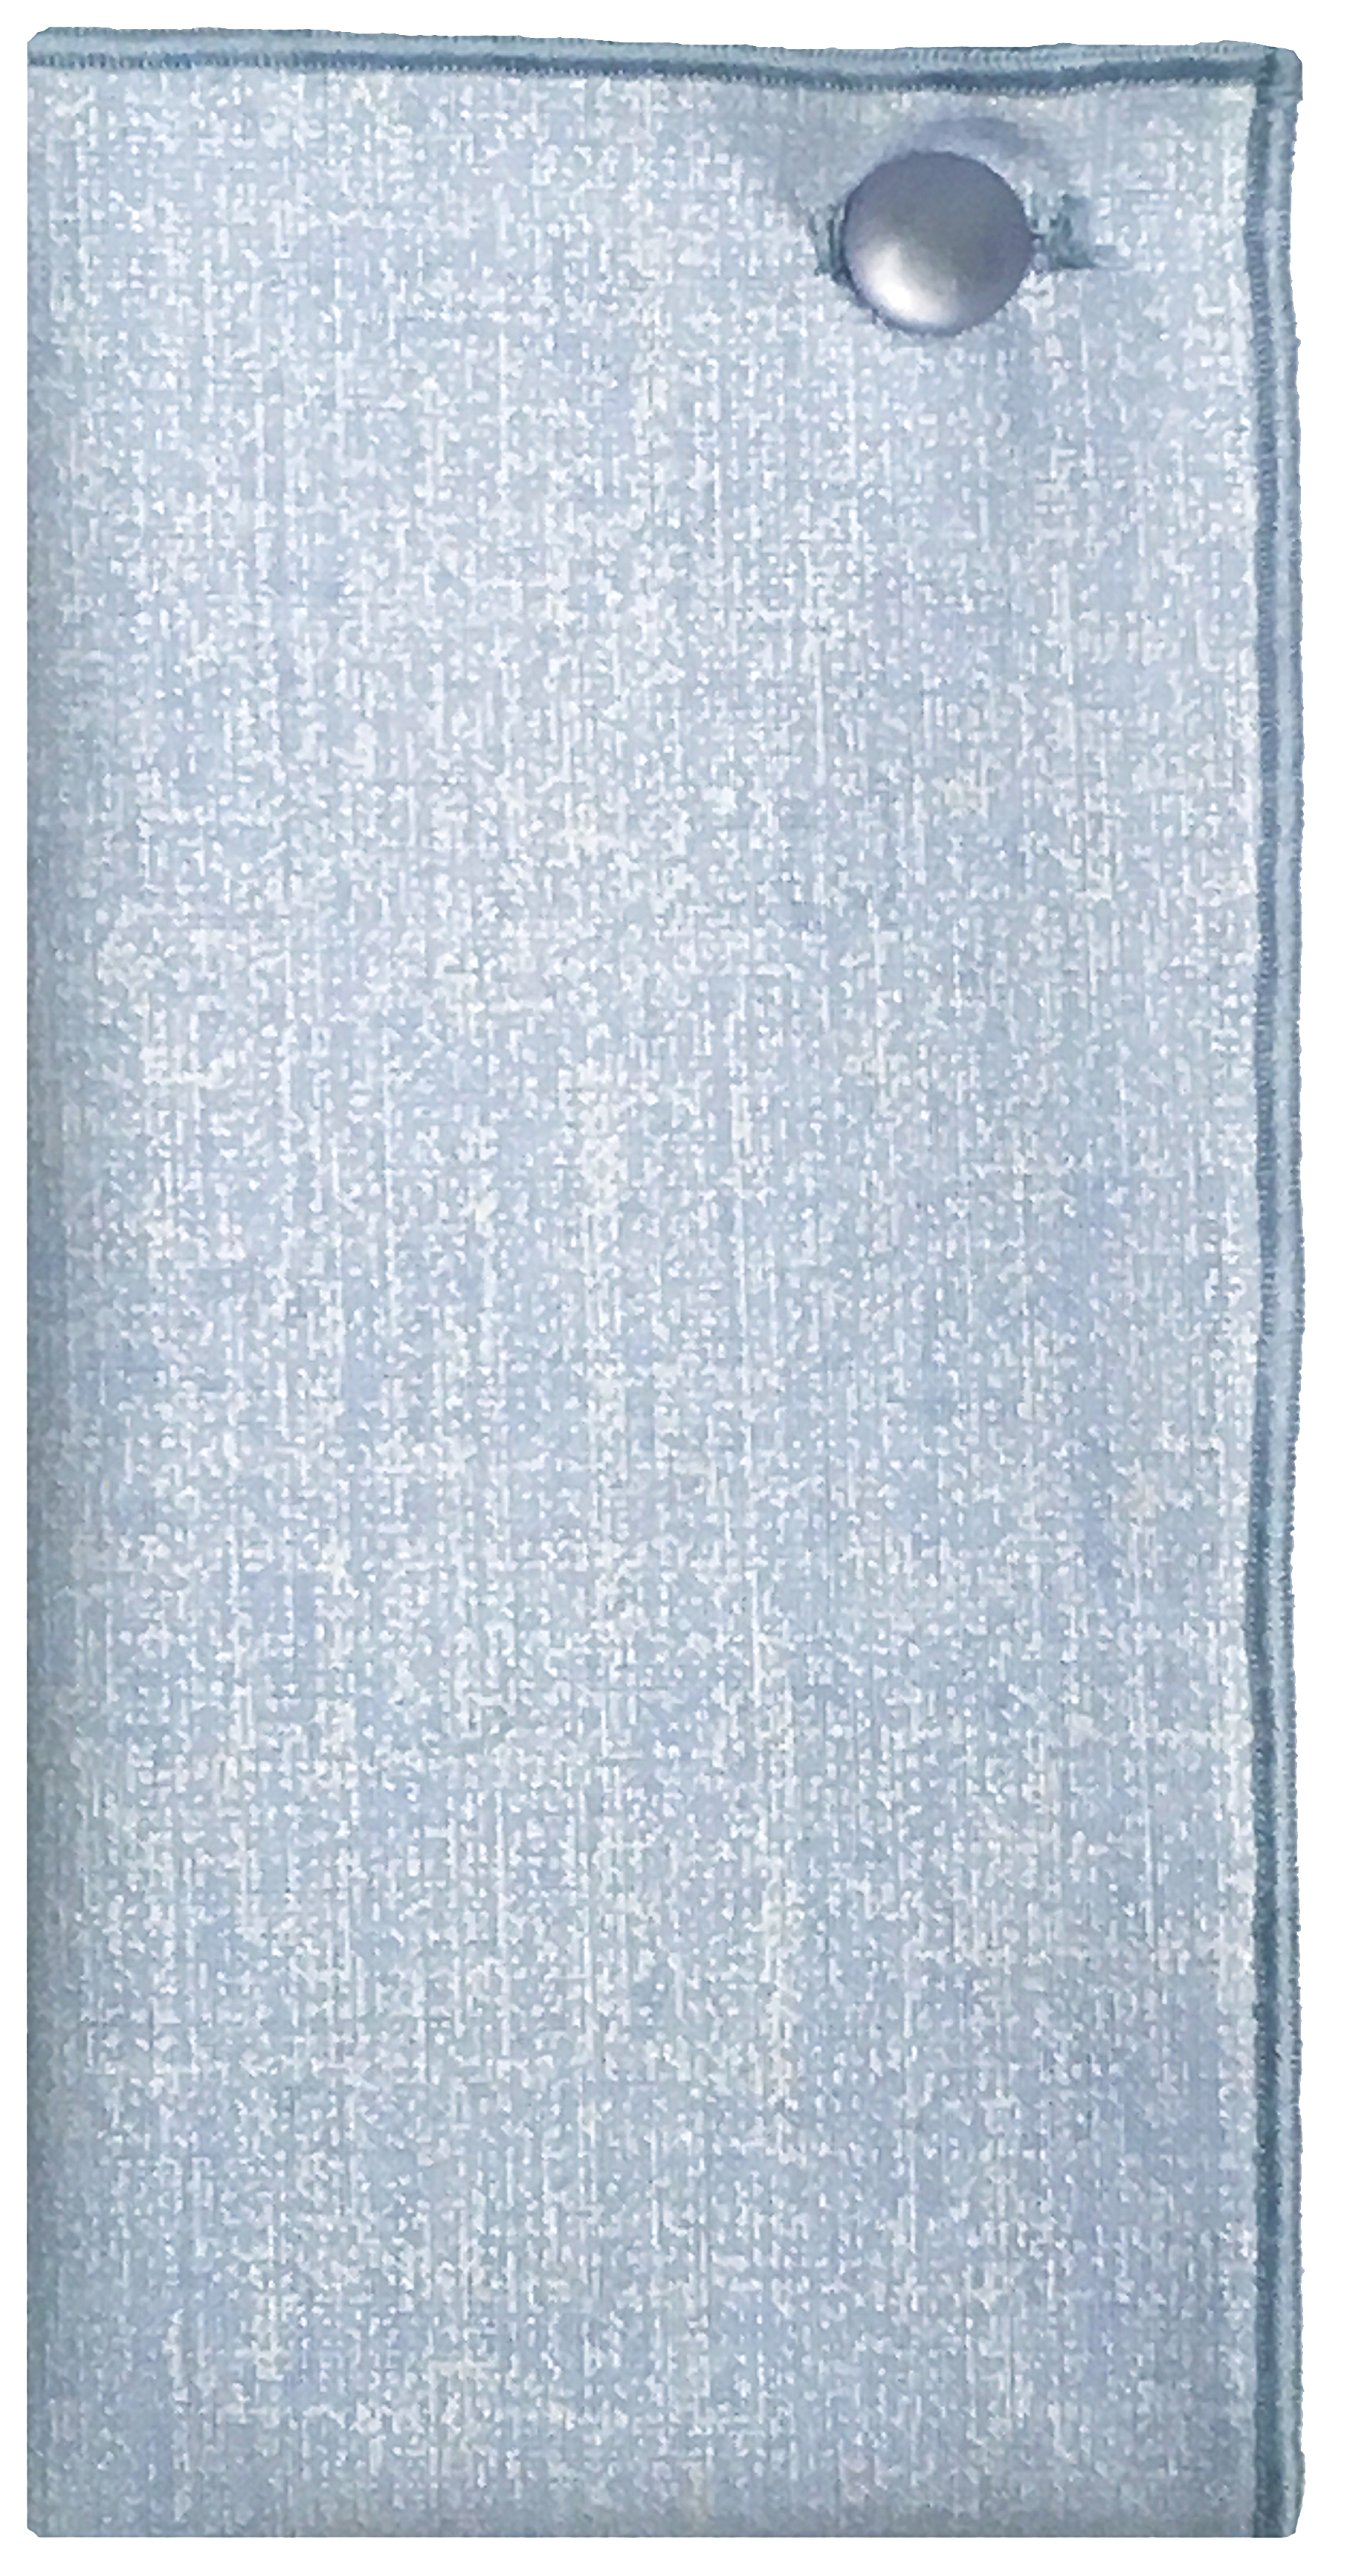 Light Blue Textured Print w/ Pale Blue Button Mens Pocket Square The Detailed Male